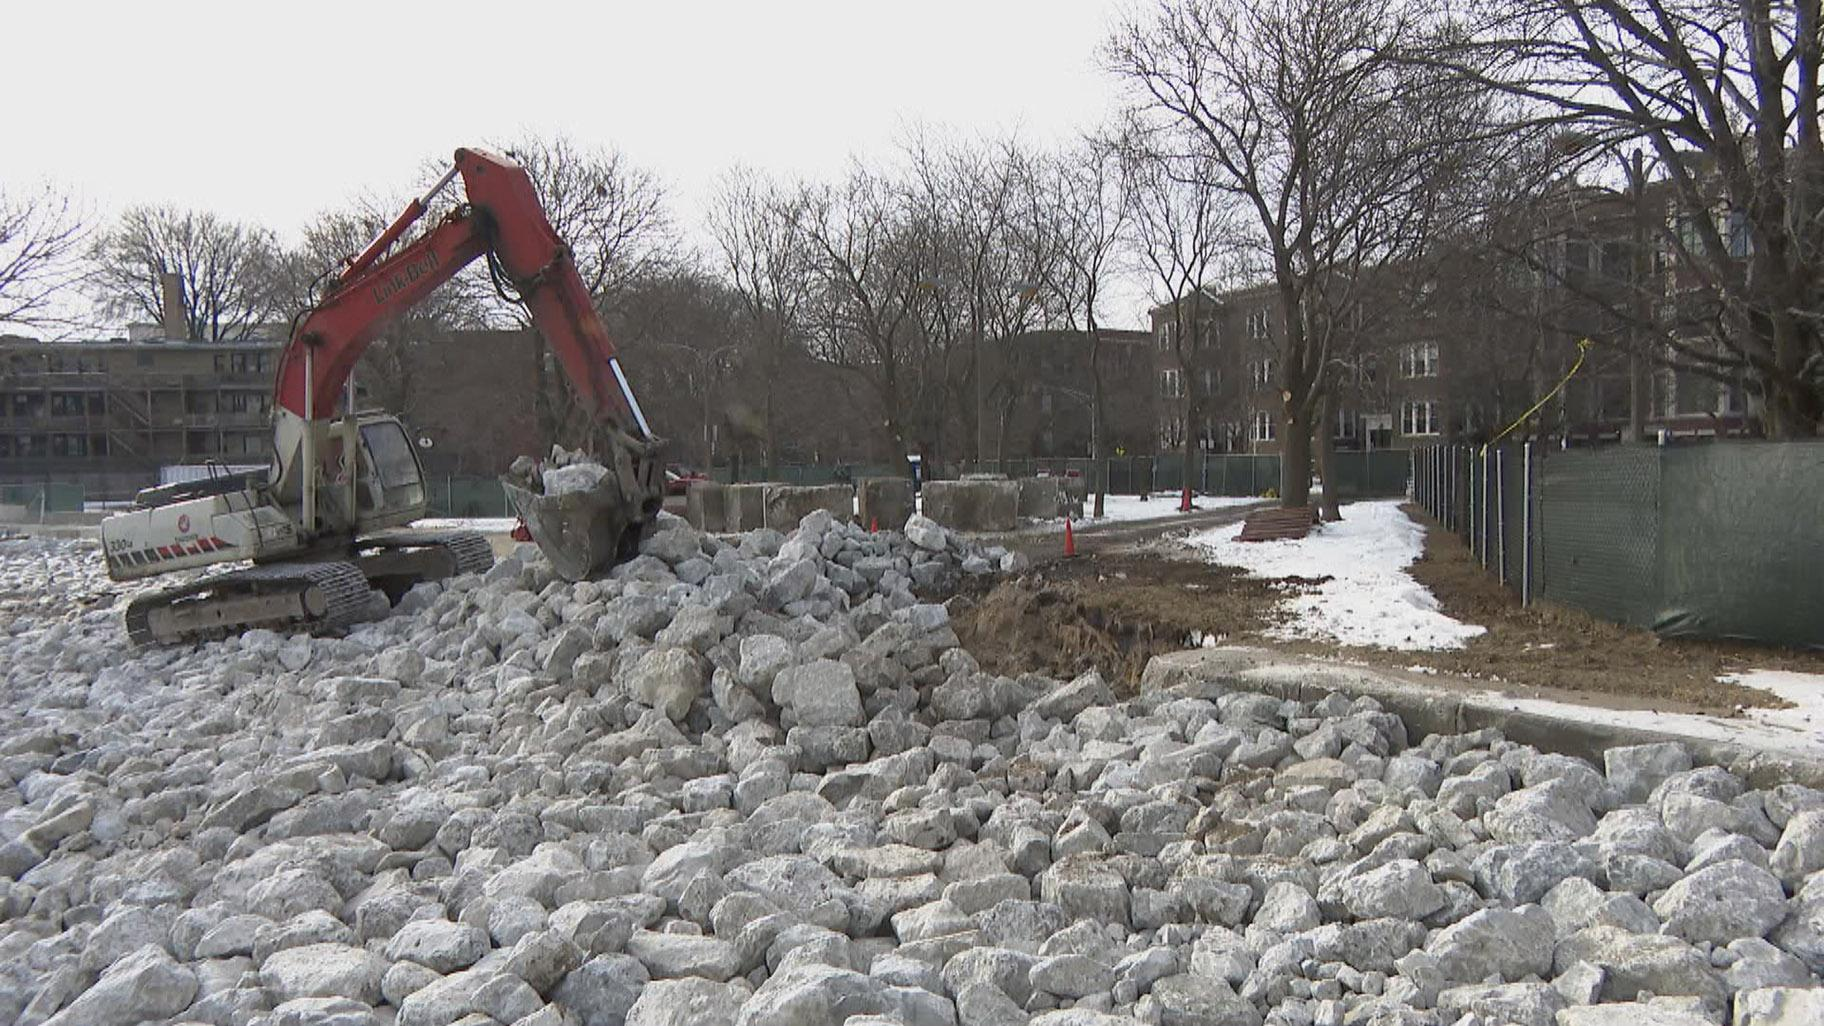 Boulders have replaced beaches along the lakefront, as part of the city's efforts to mitigate shoreline damage. (WTTW News)